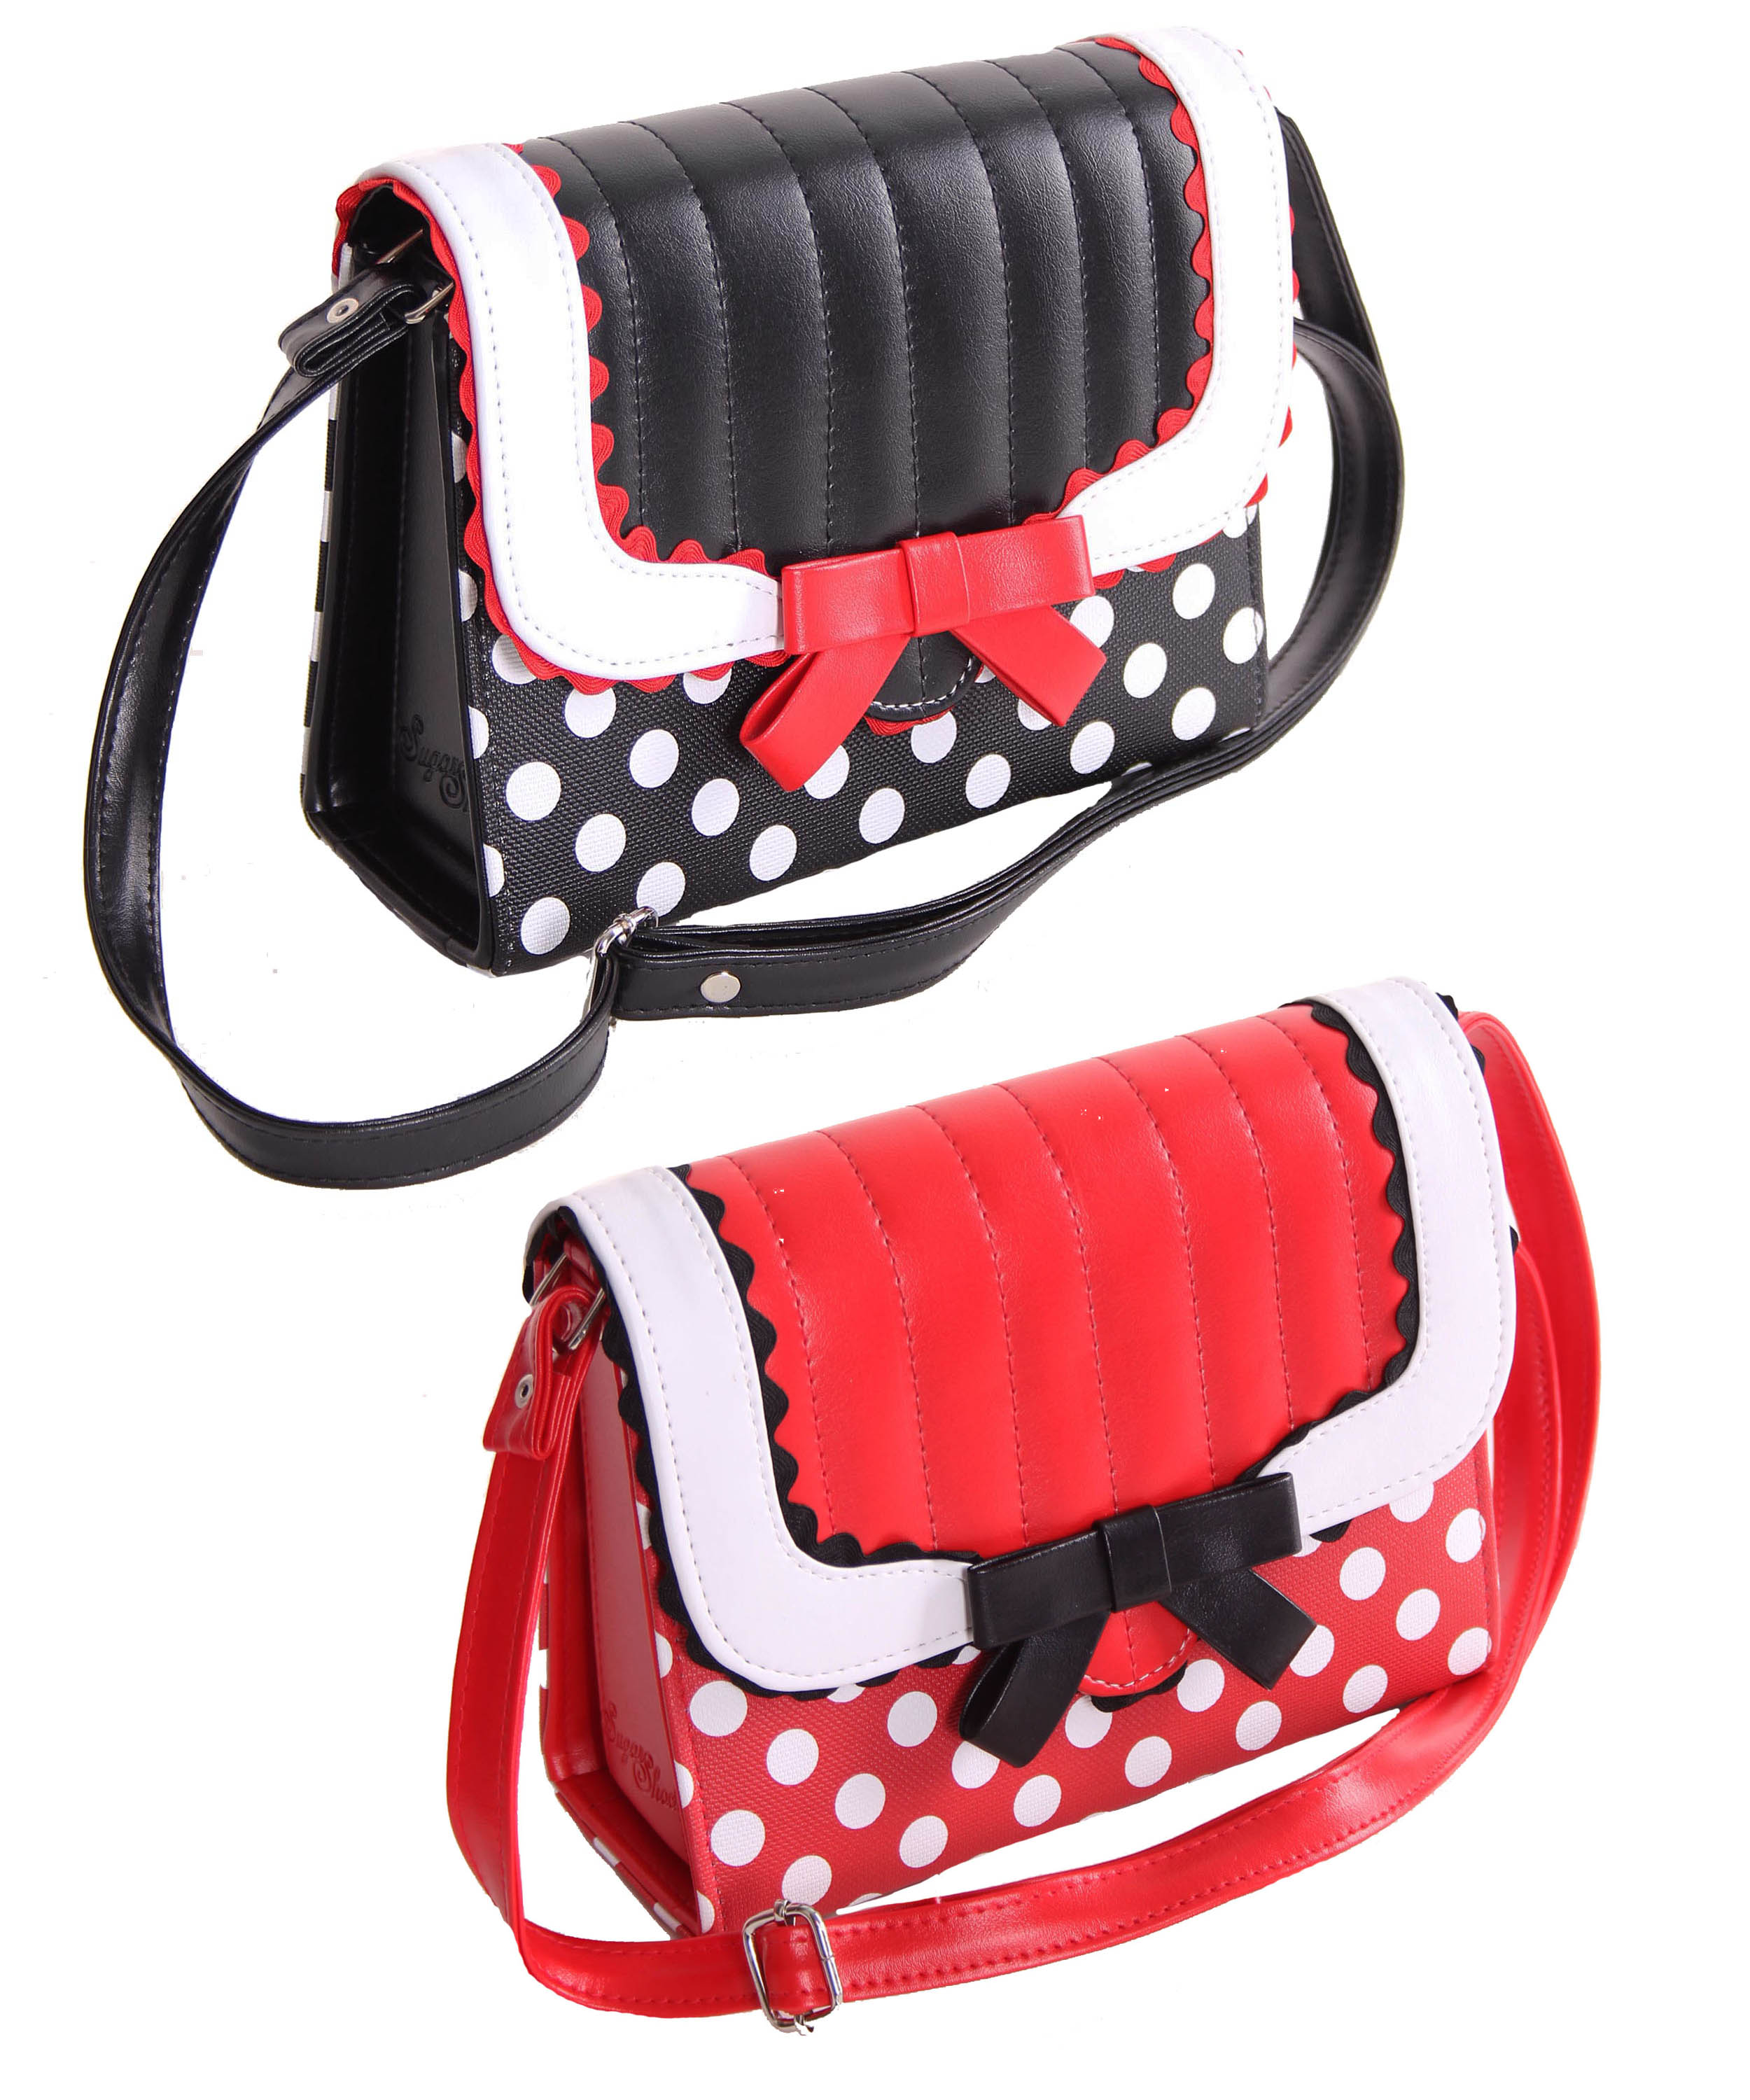 d8f62561438b7 SugarShock Soranda retro Pin Up Polka Dots Handtasche Rockabilly ...